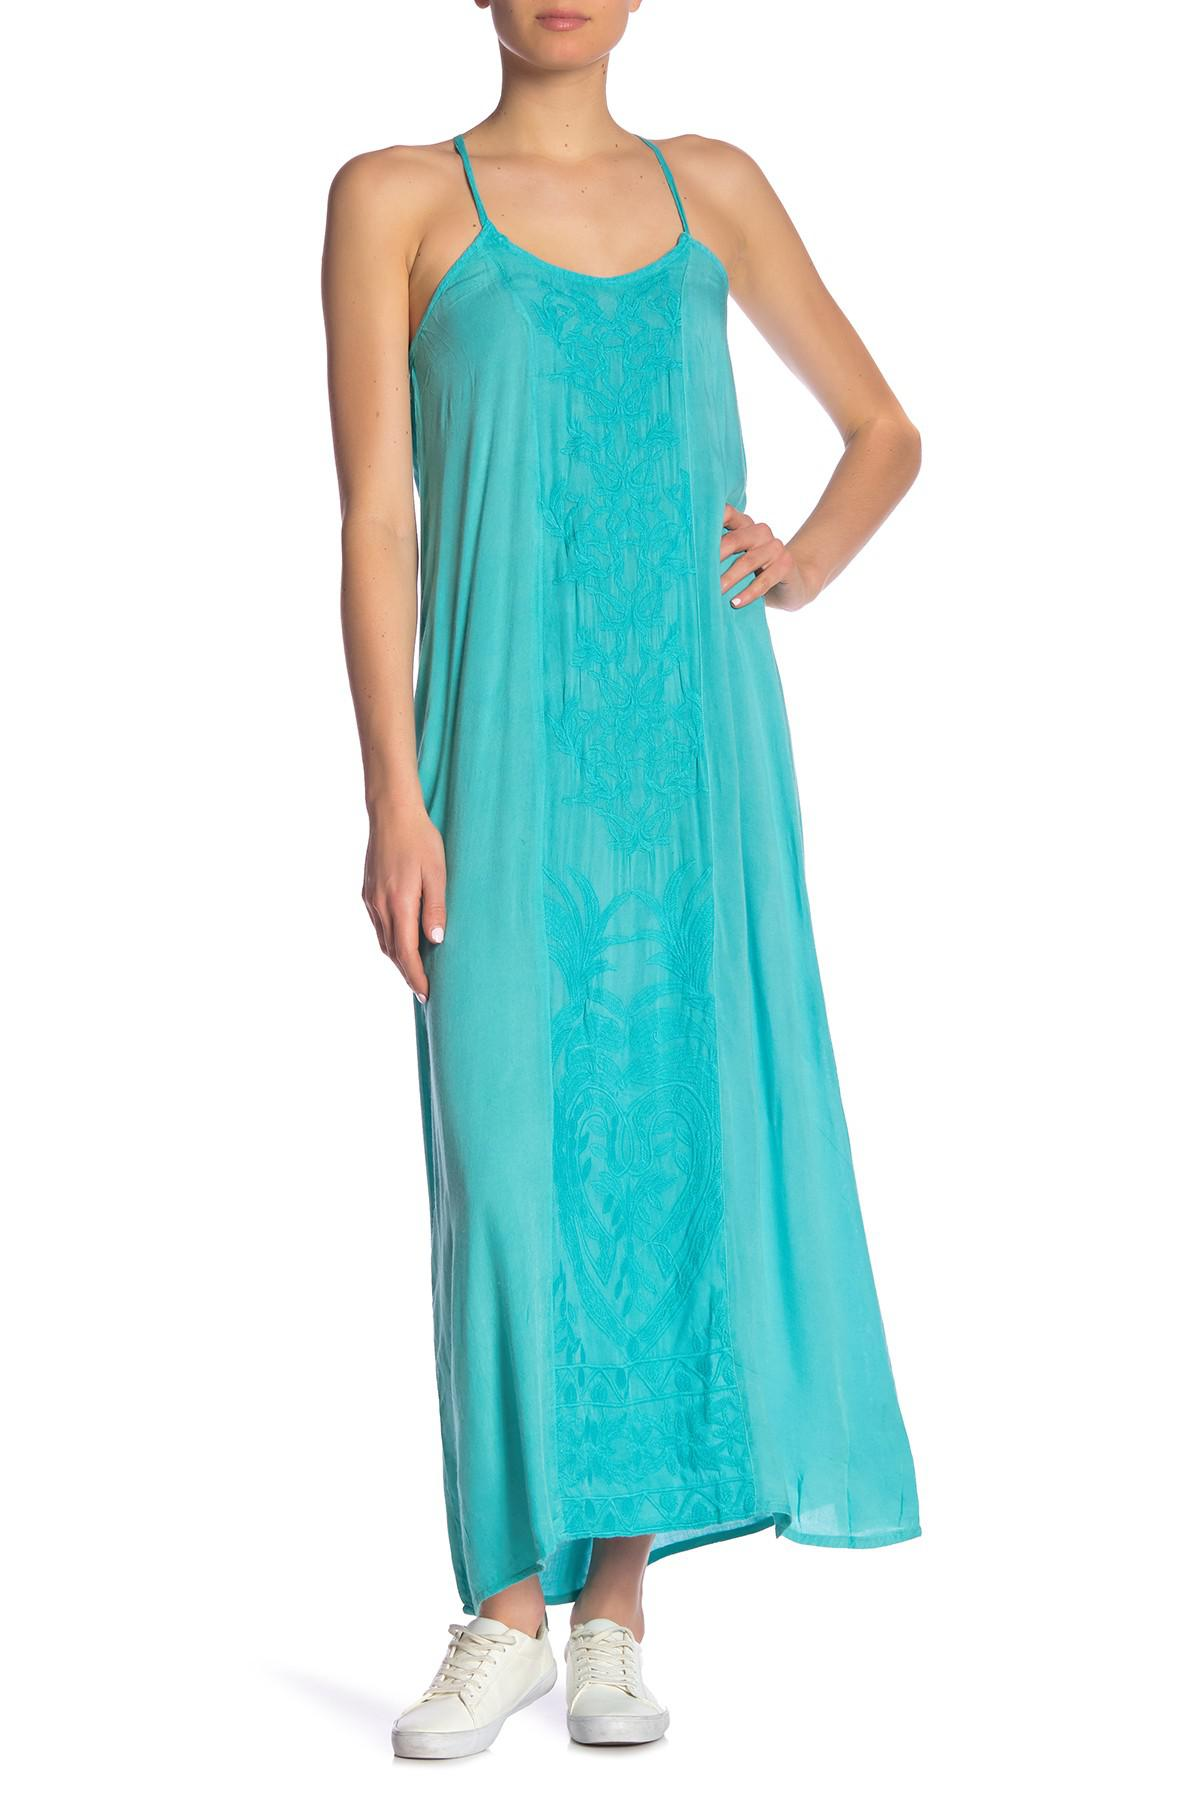 c9802900ed0 Lyst - Boho Me Embroidered Maxi Dress in Blue